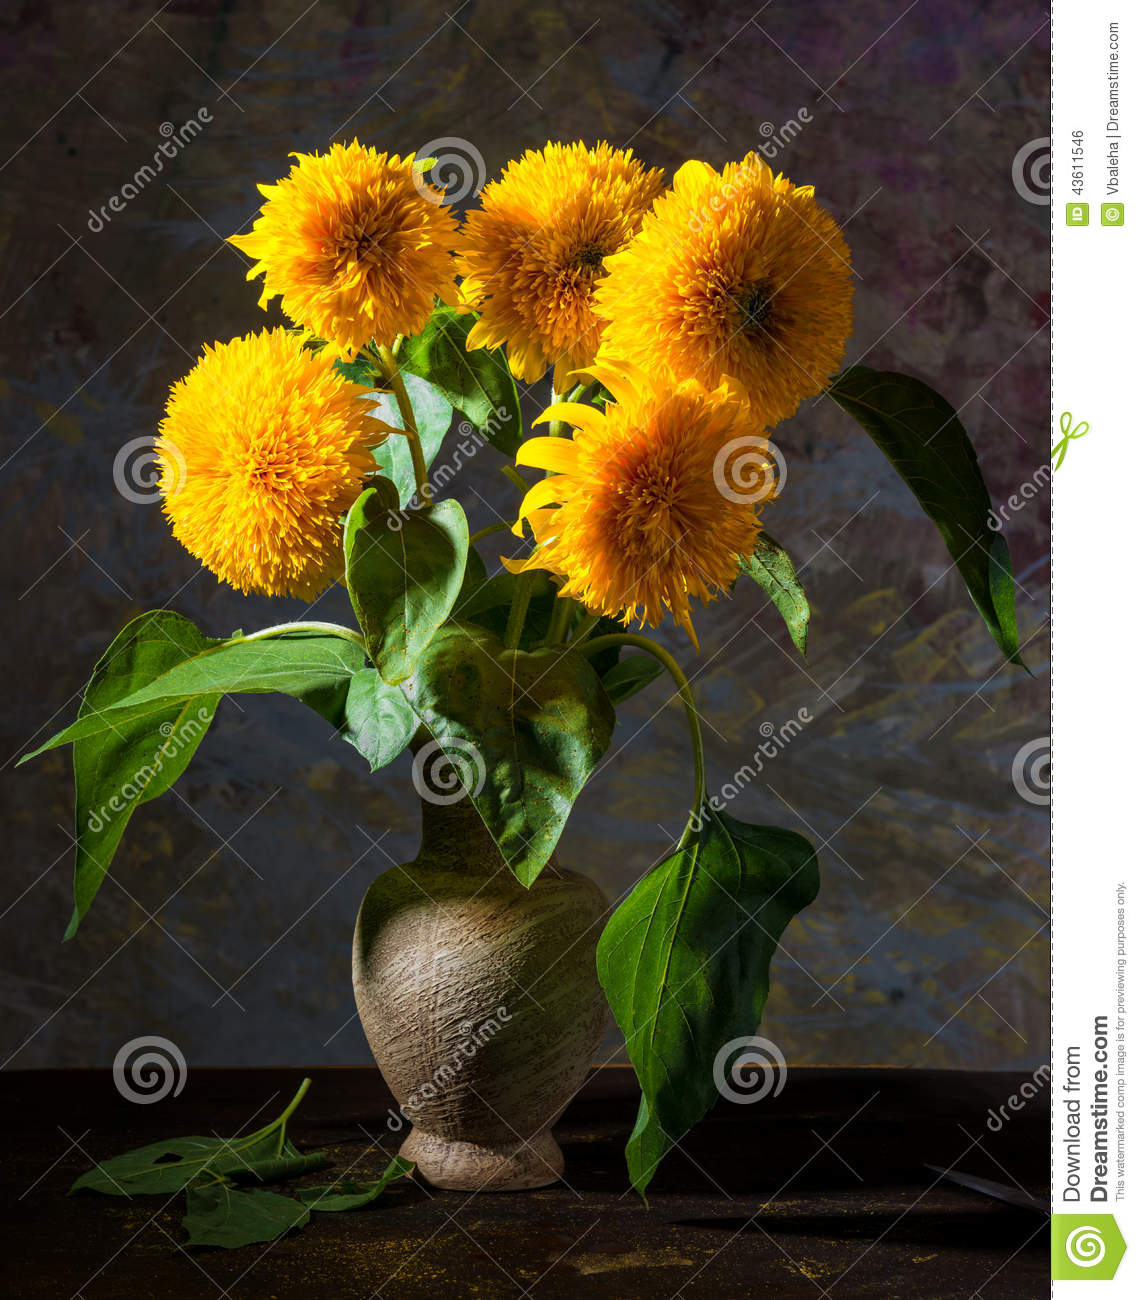 August 2014 Cpo Offers Table Jpg: Beaux Tournesols Dans Un Vase Photo Stock